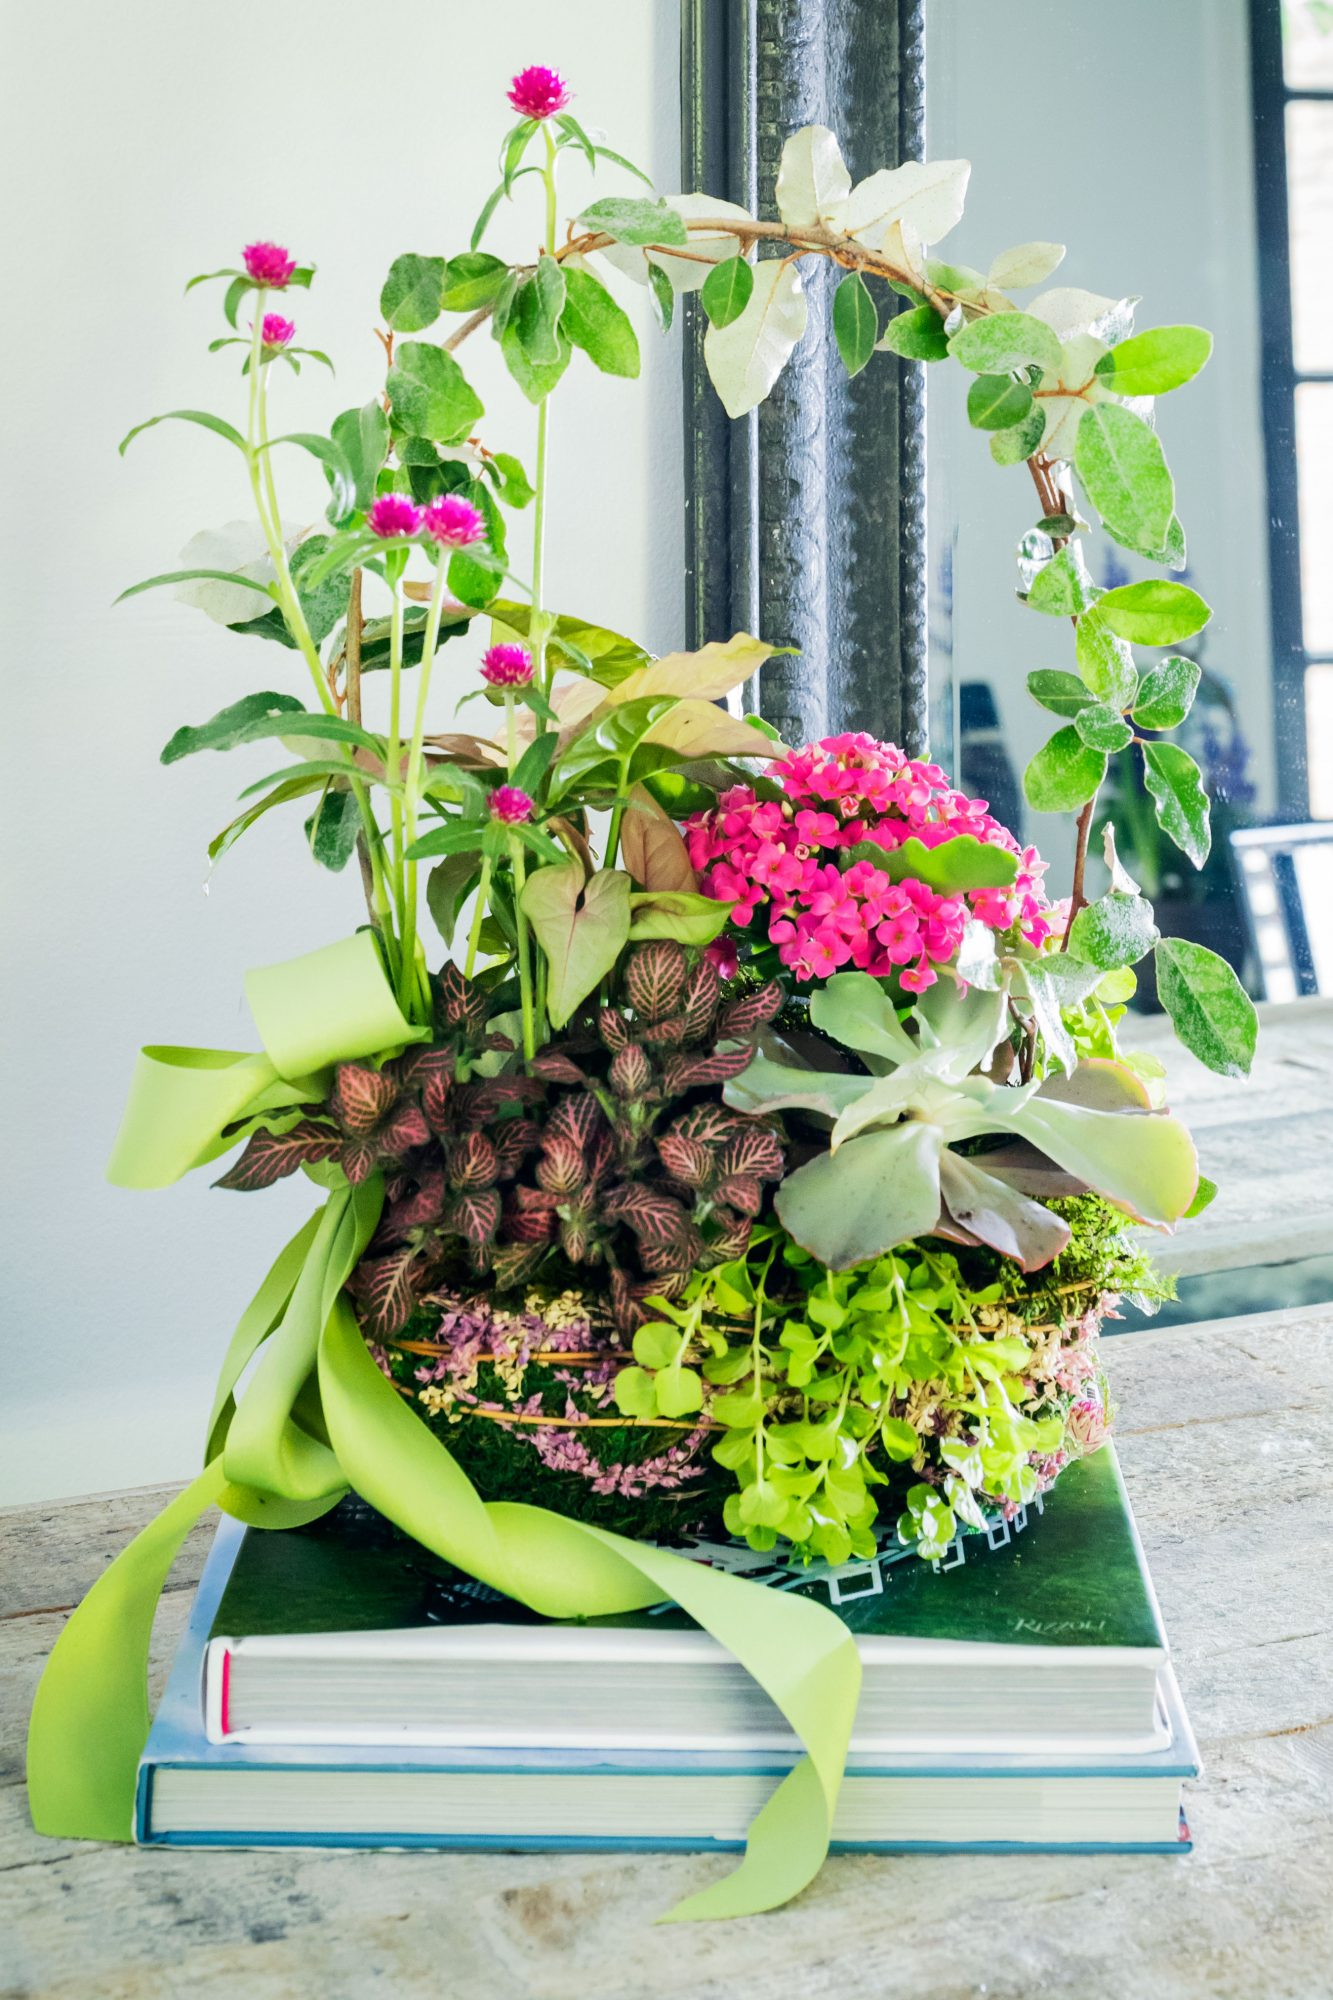 Spring growing arrangement with pink flowers, moss, and branch formed like basket handle